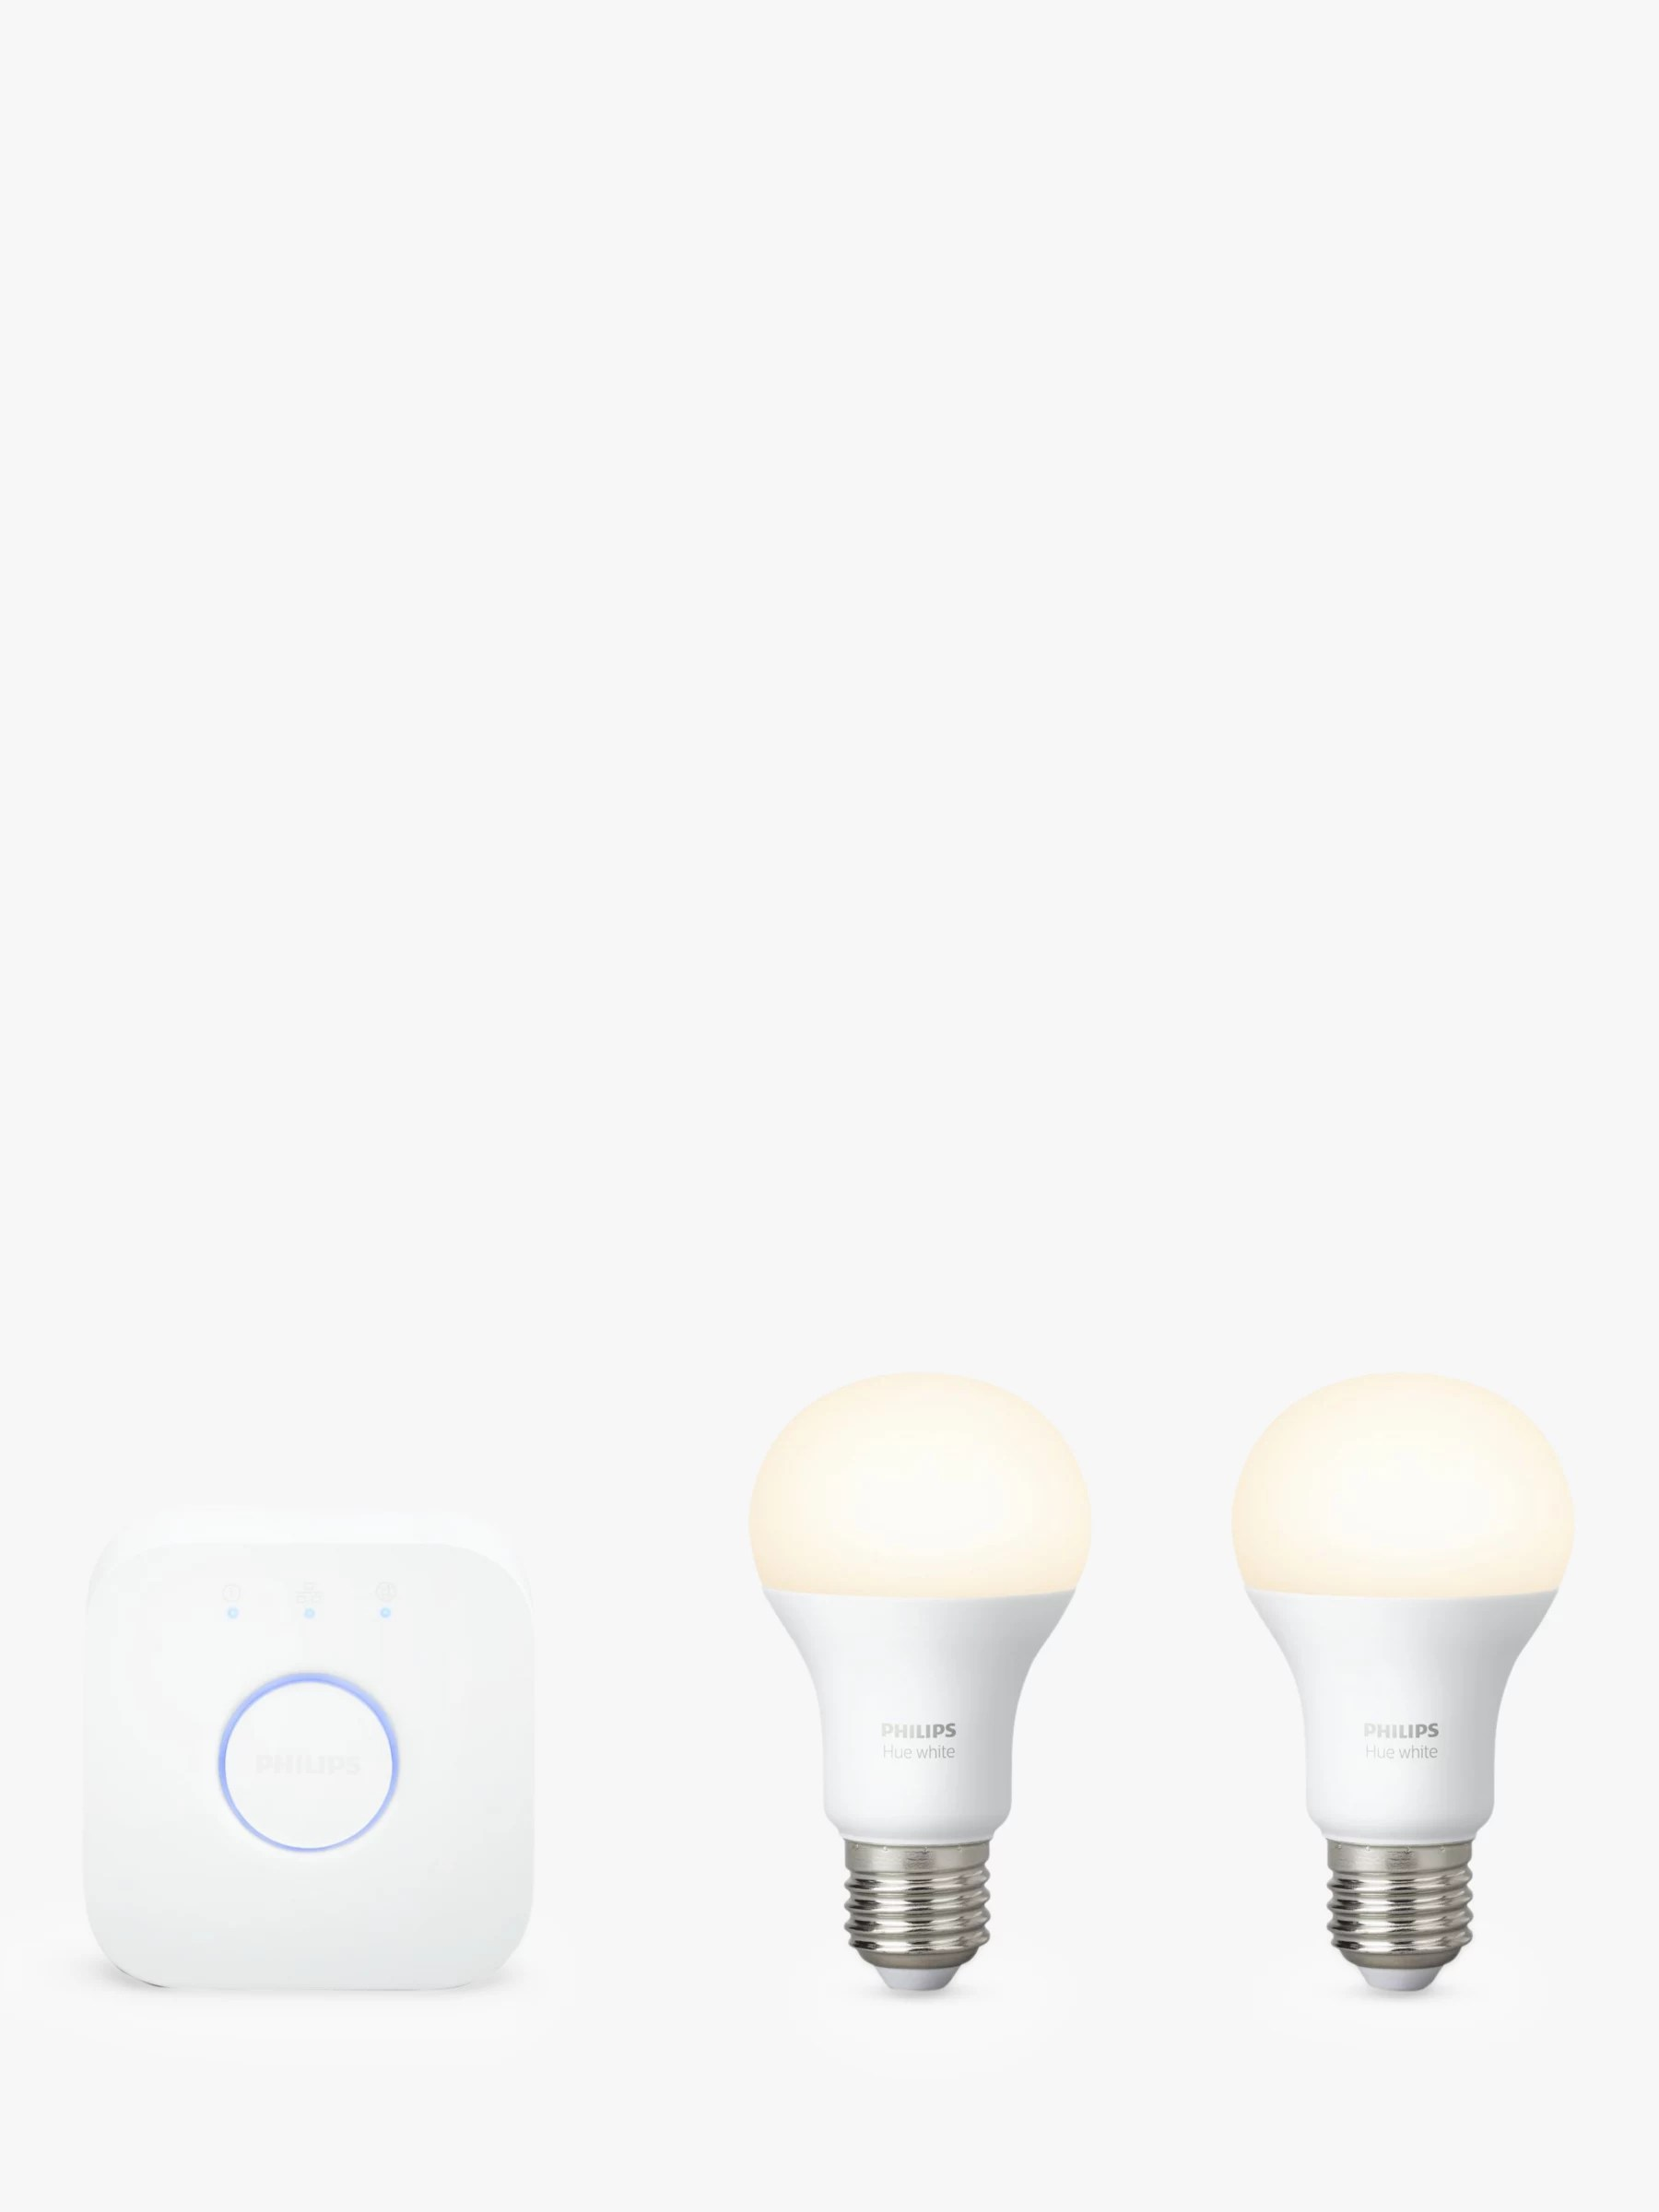 Philips Hub Philips Hue White Personal Wireless Lighting Led Starter Kit